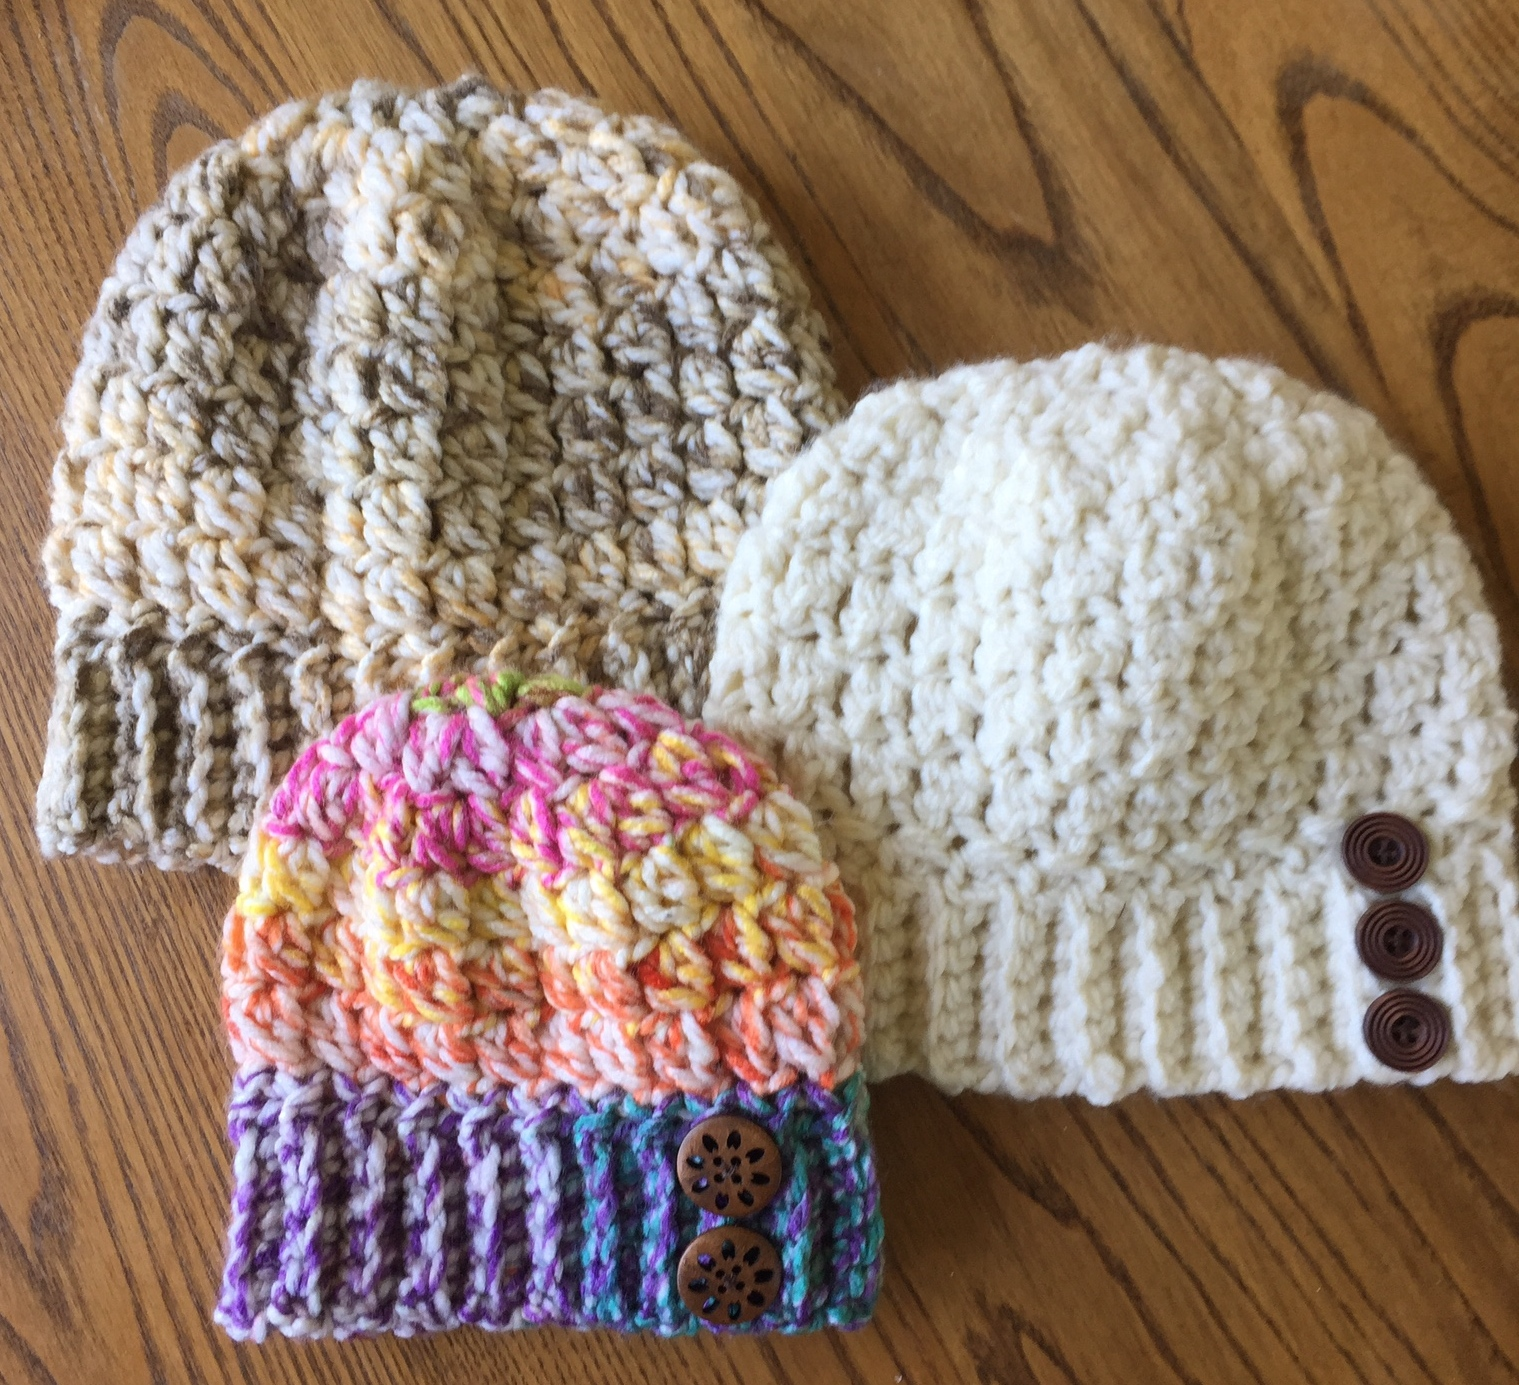 Crochet Patterns Using Chunky Yarn : Free Crochet Pattern: The Bristol Hat